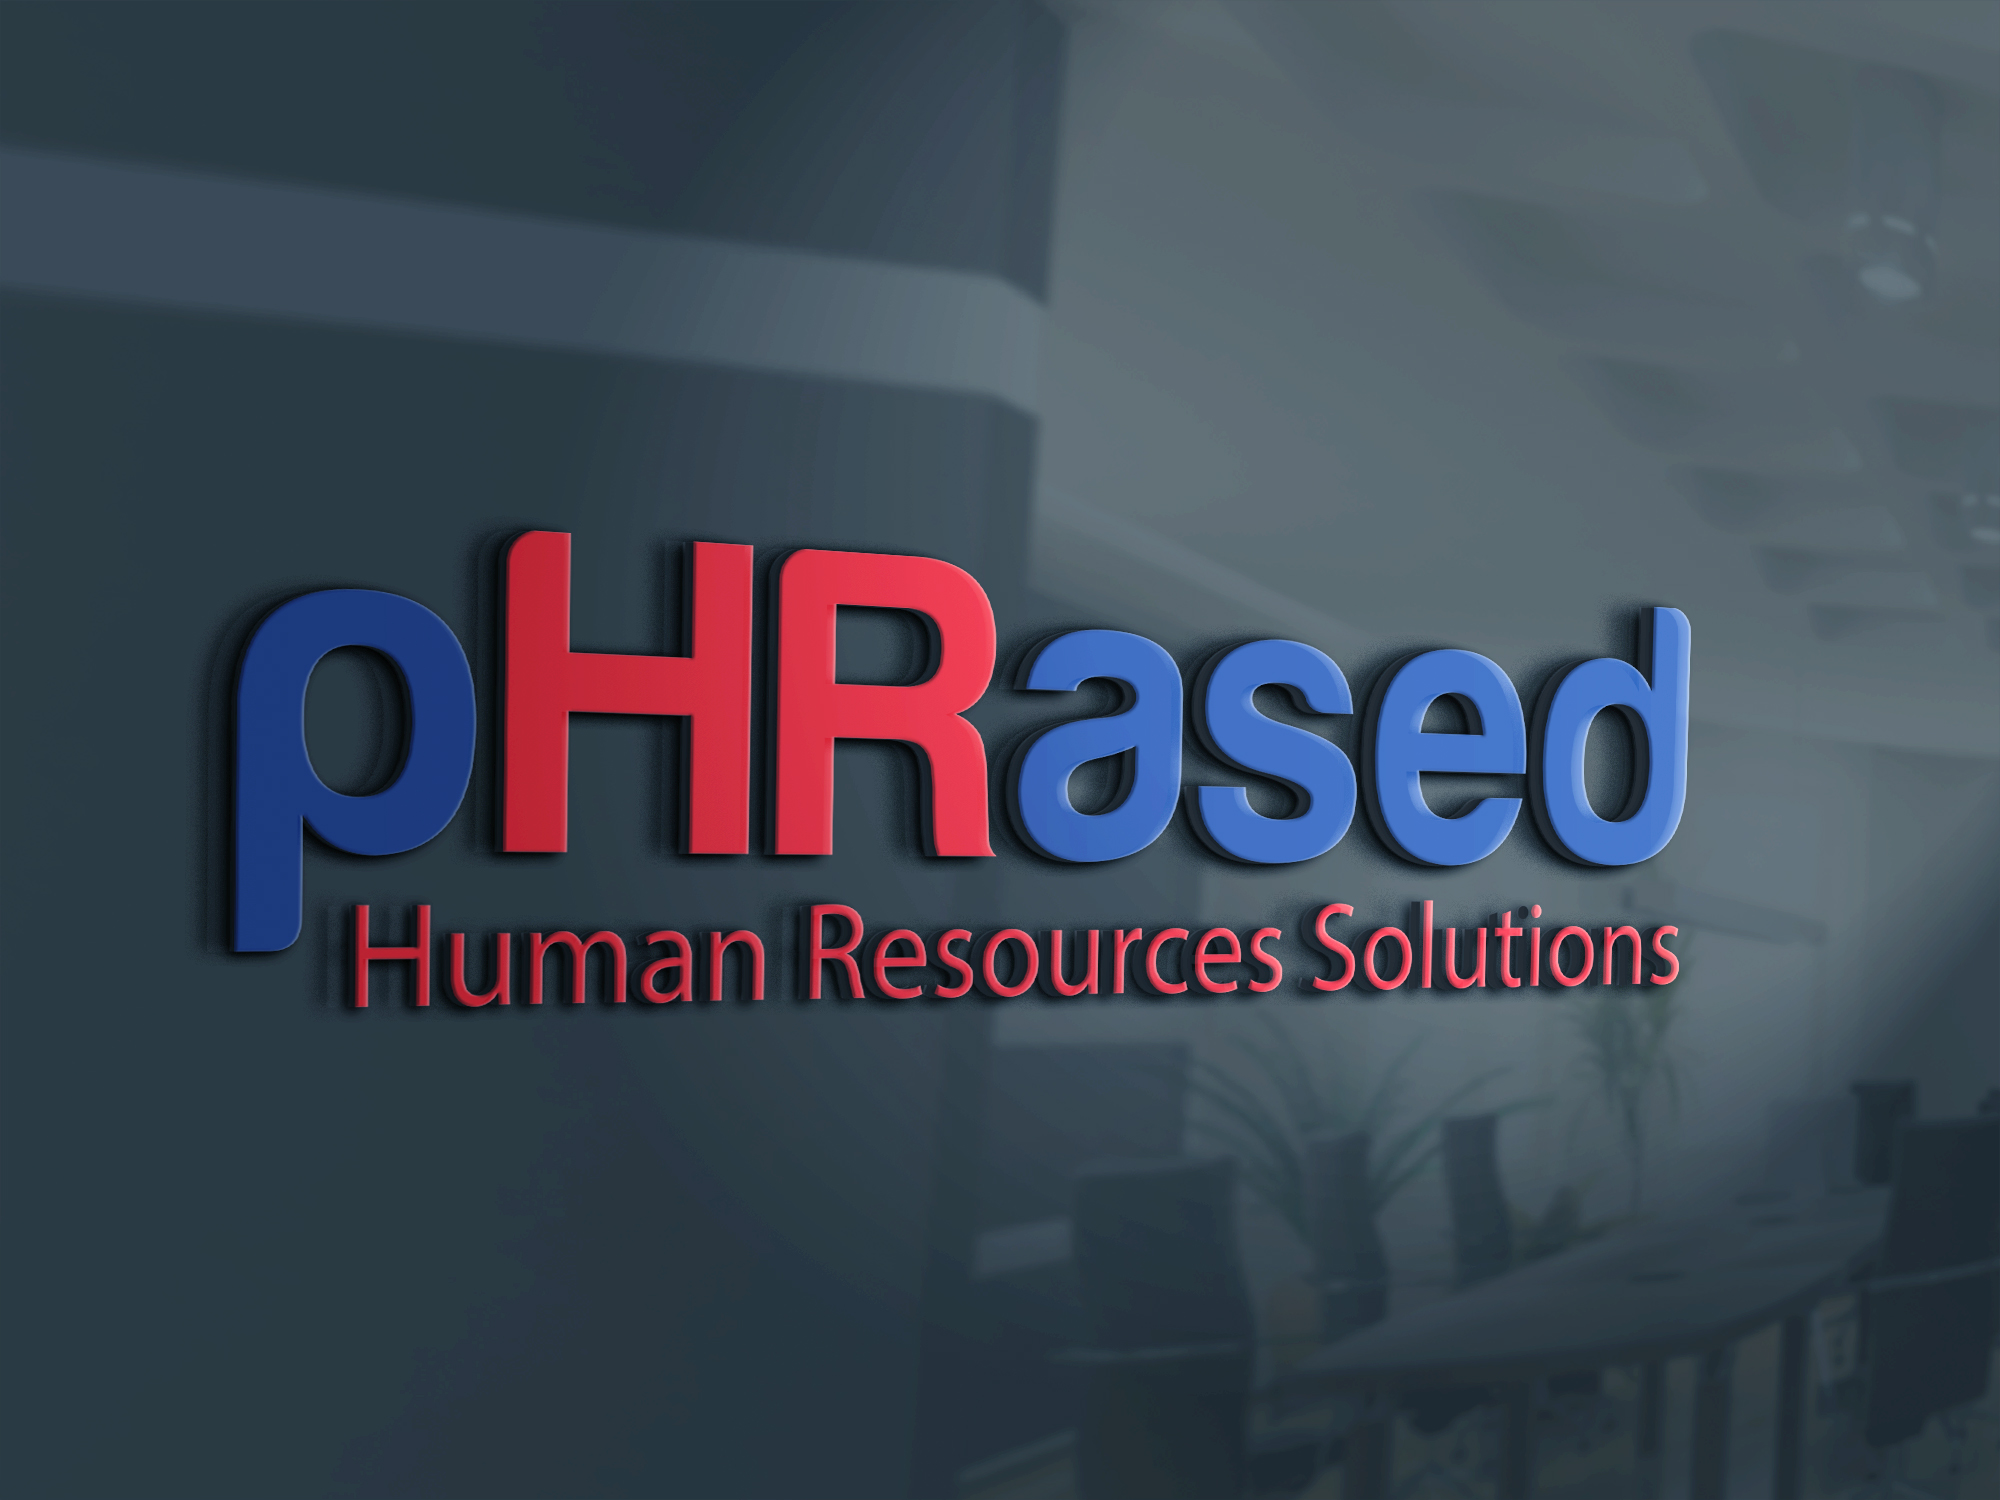 Phrased Human Resources Solutions LLC